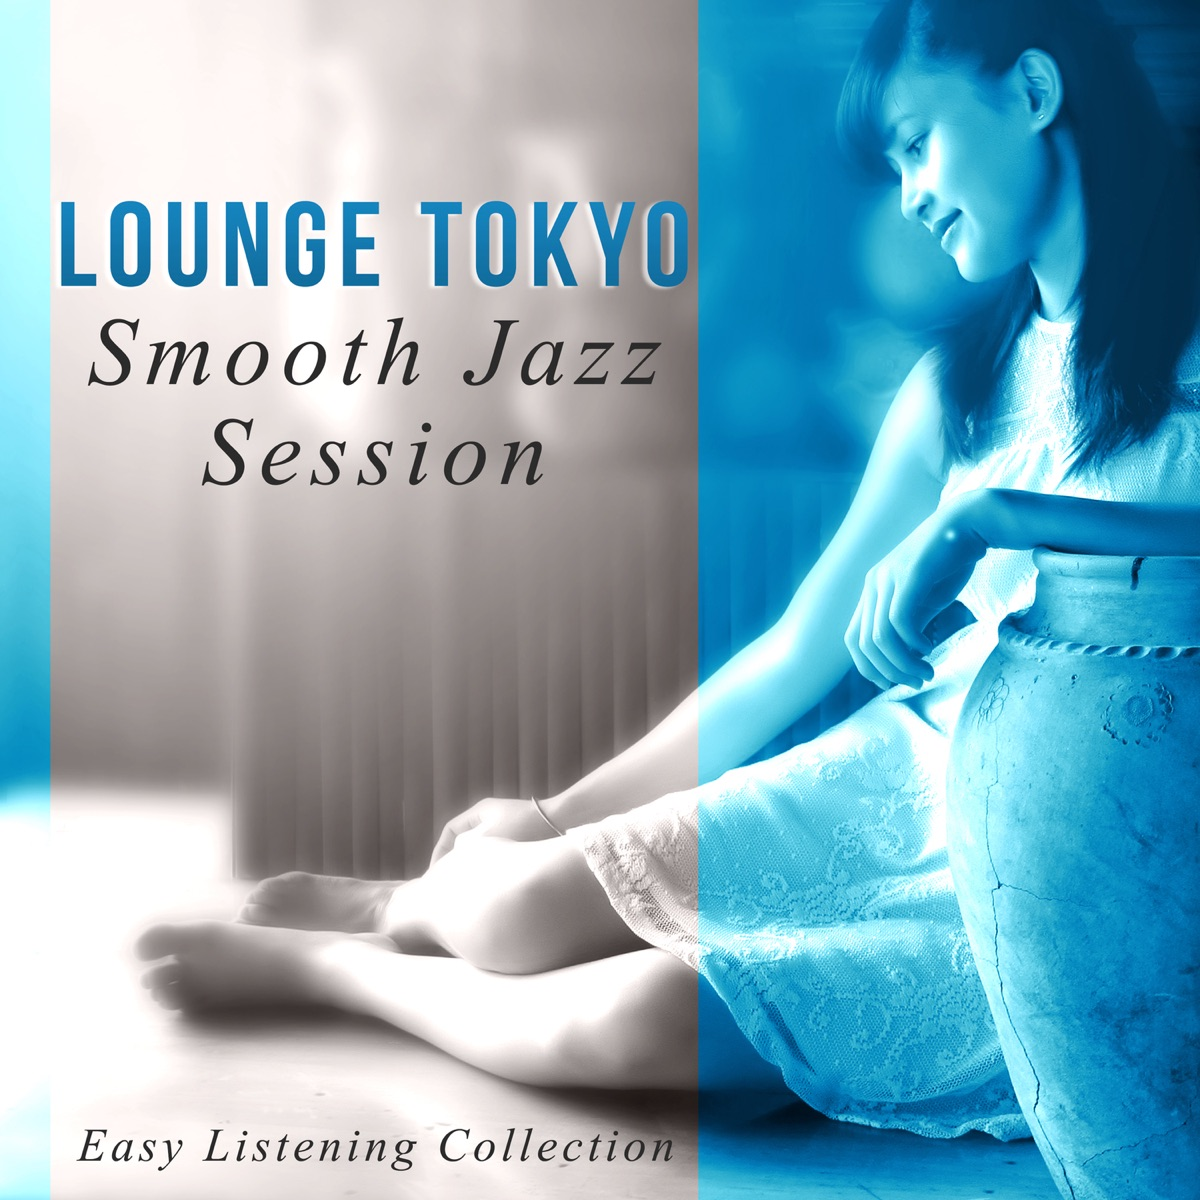 Lounge Tokyo Smooth Jazz Session - Easy Listening Collection